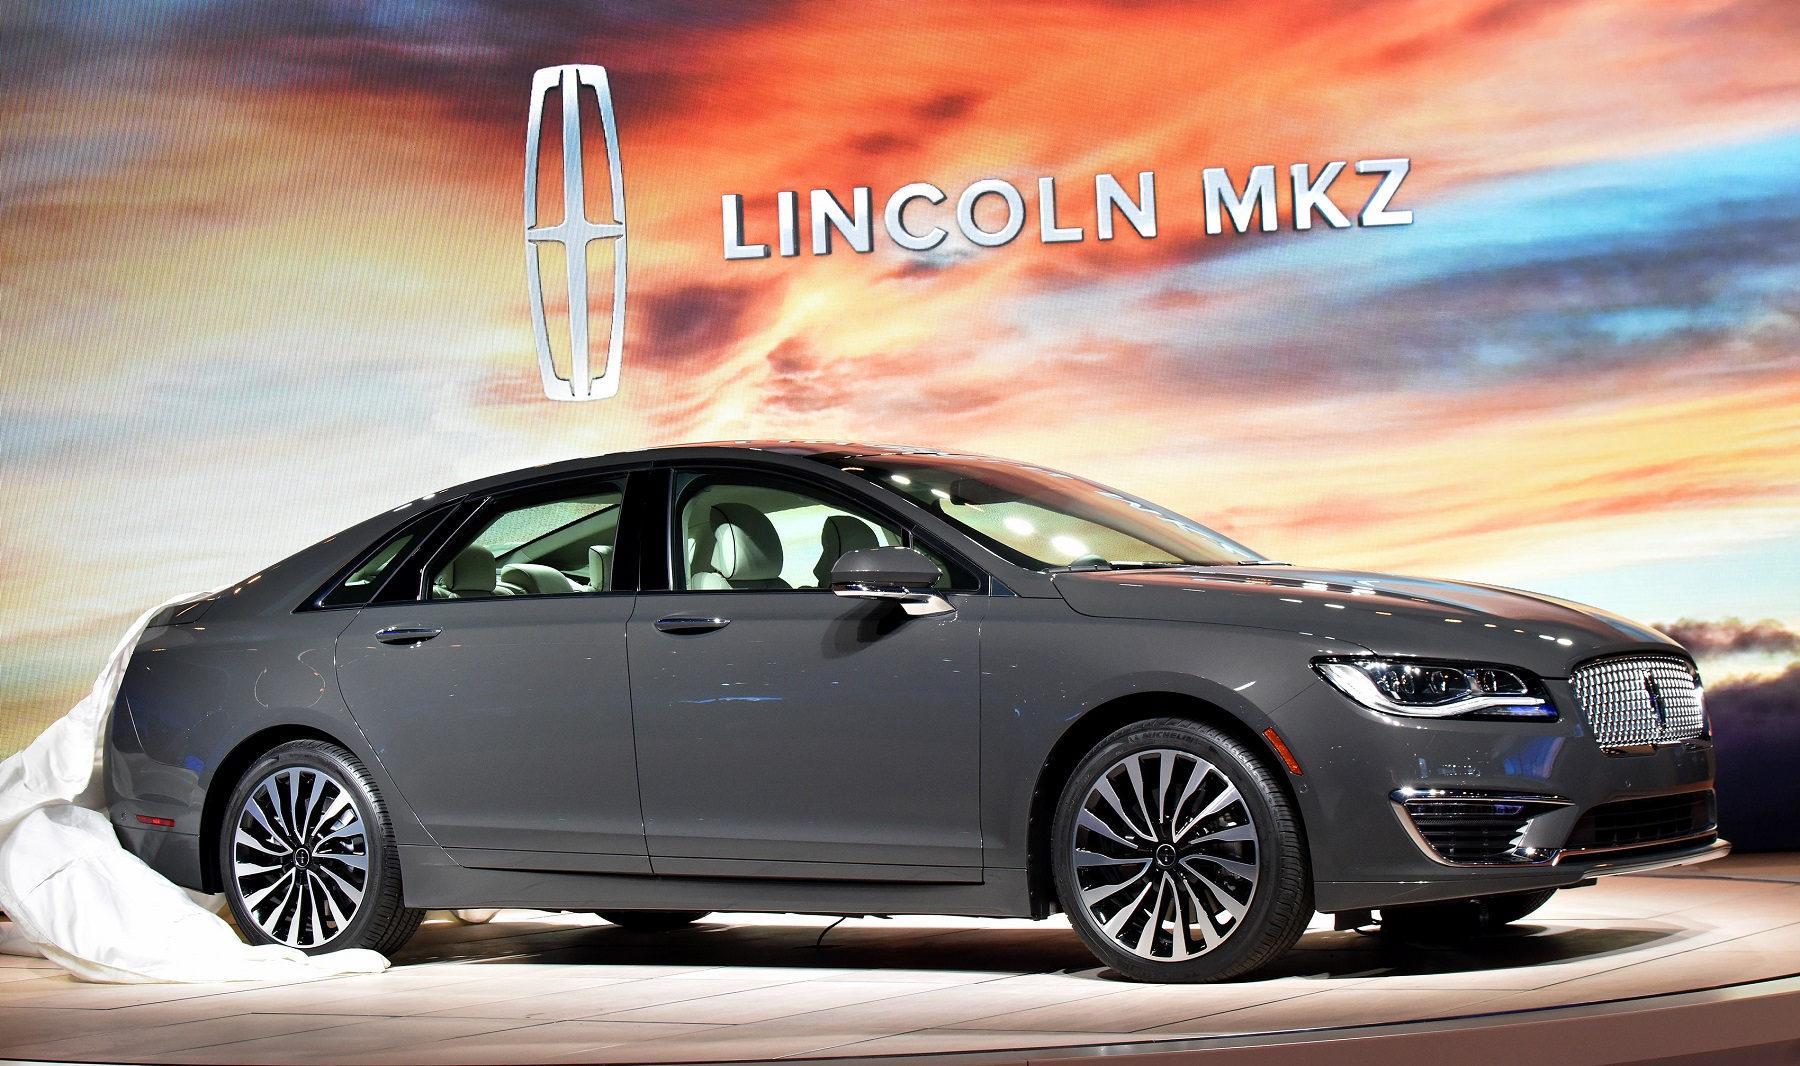 2017 Lincoln MKZ: Quiet, potent luxury with 400 hp